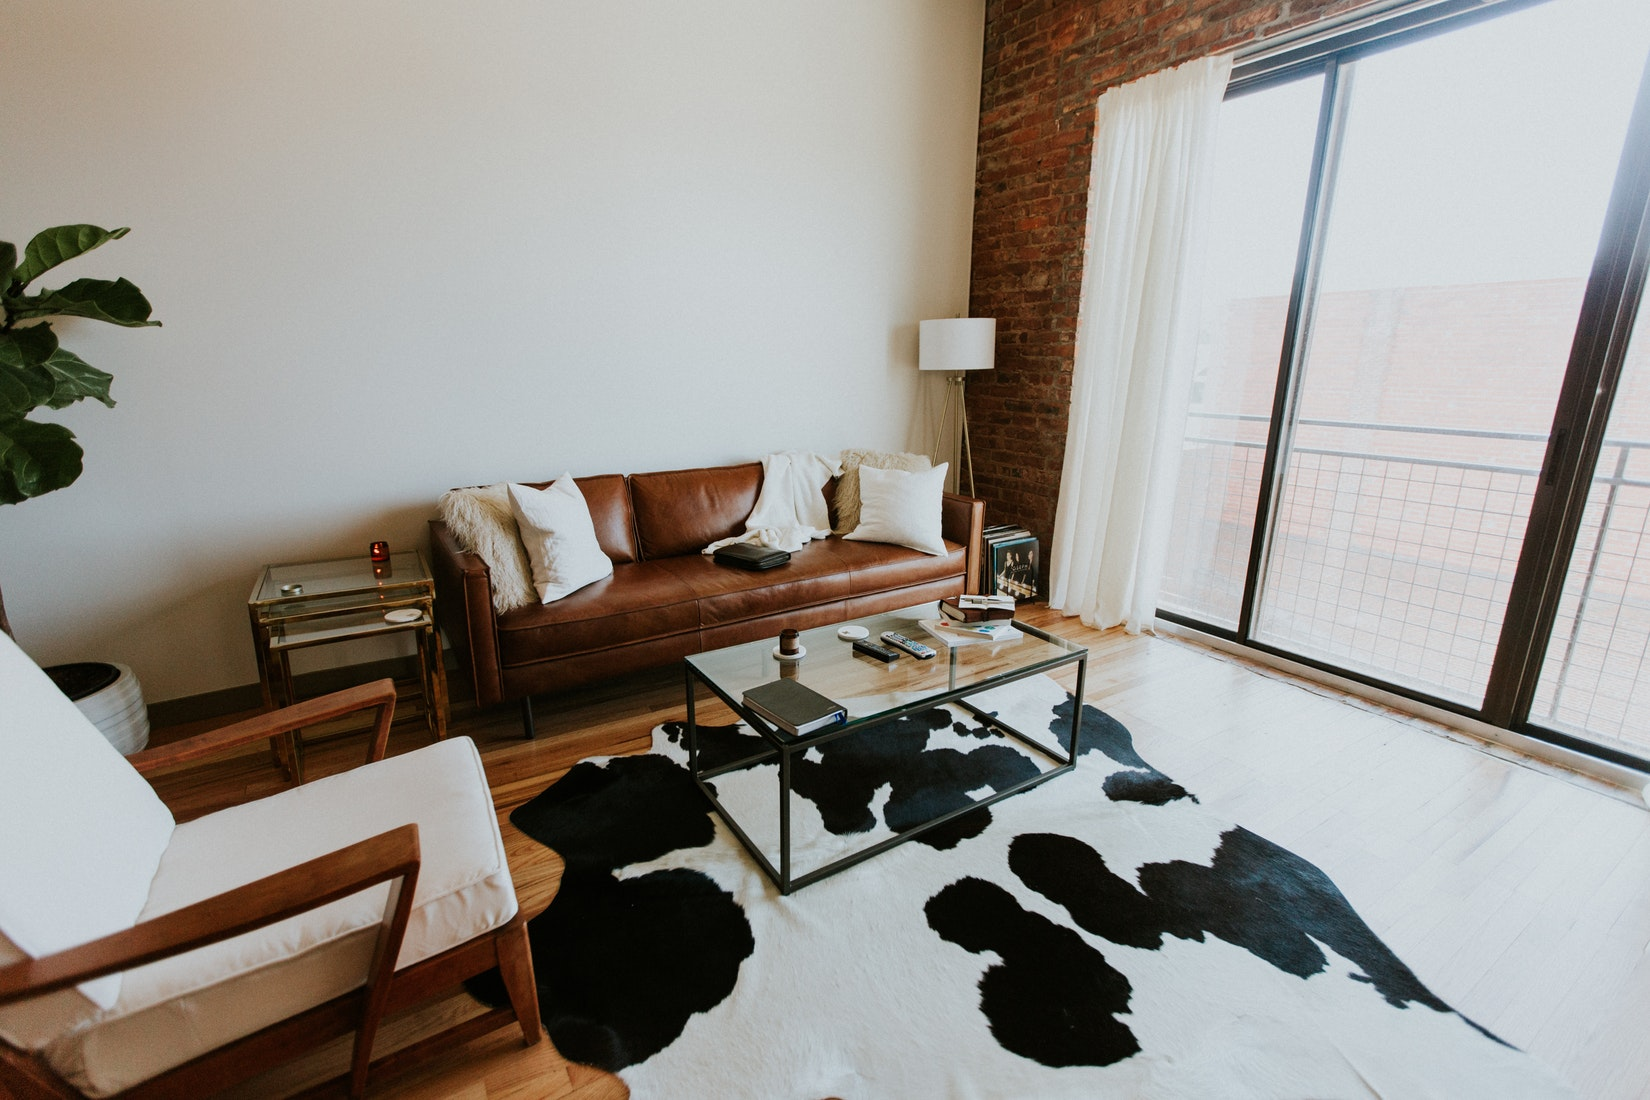 9 Expert Airbnb Hosting Tips for Designing the Ultimate